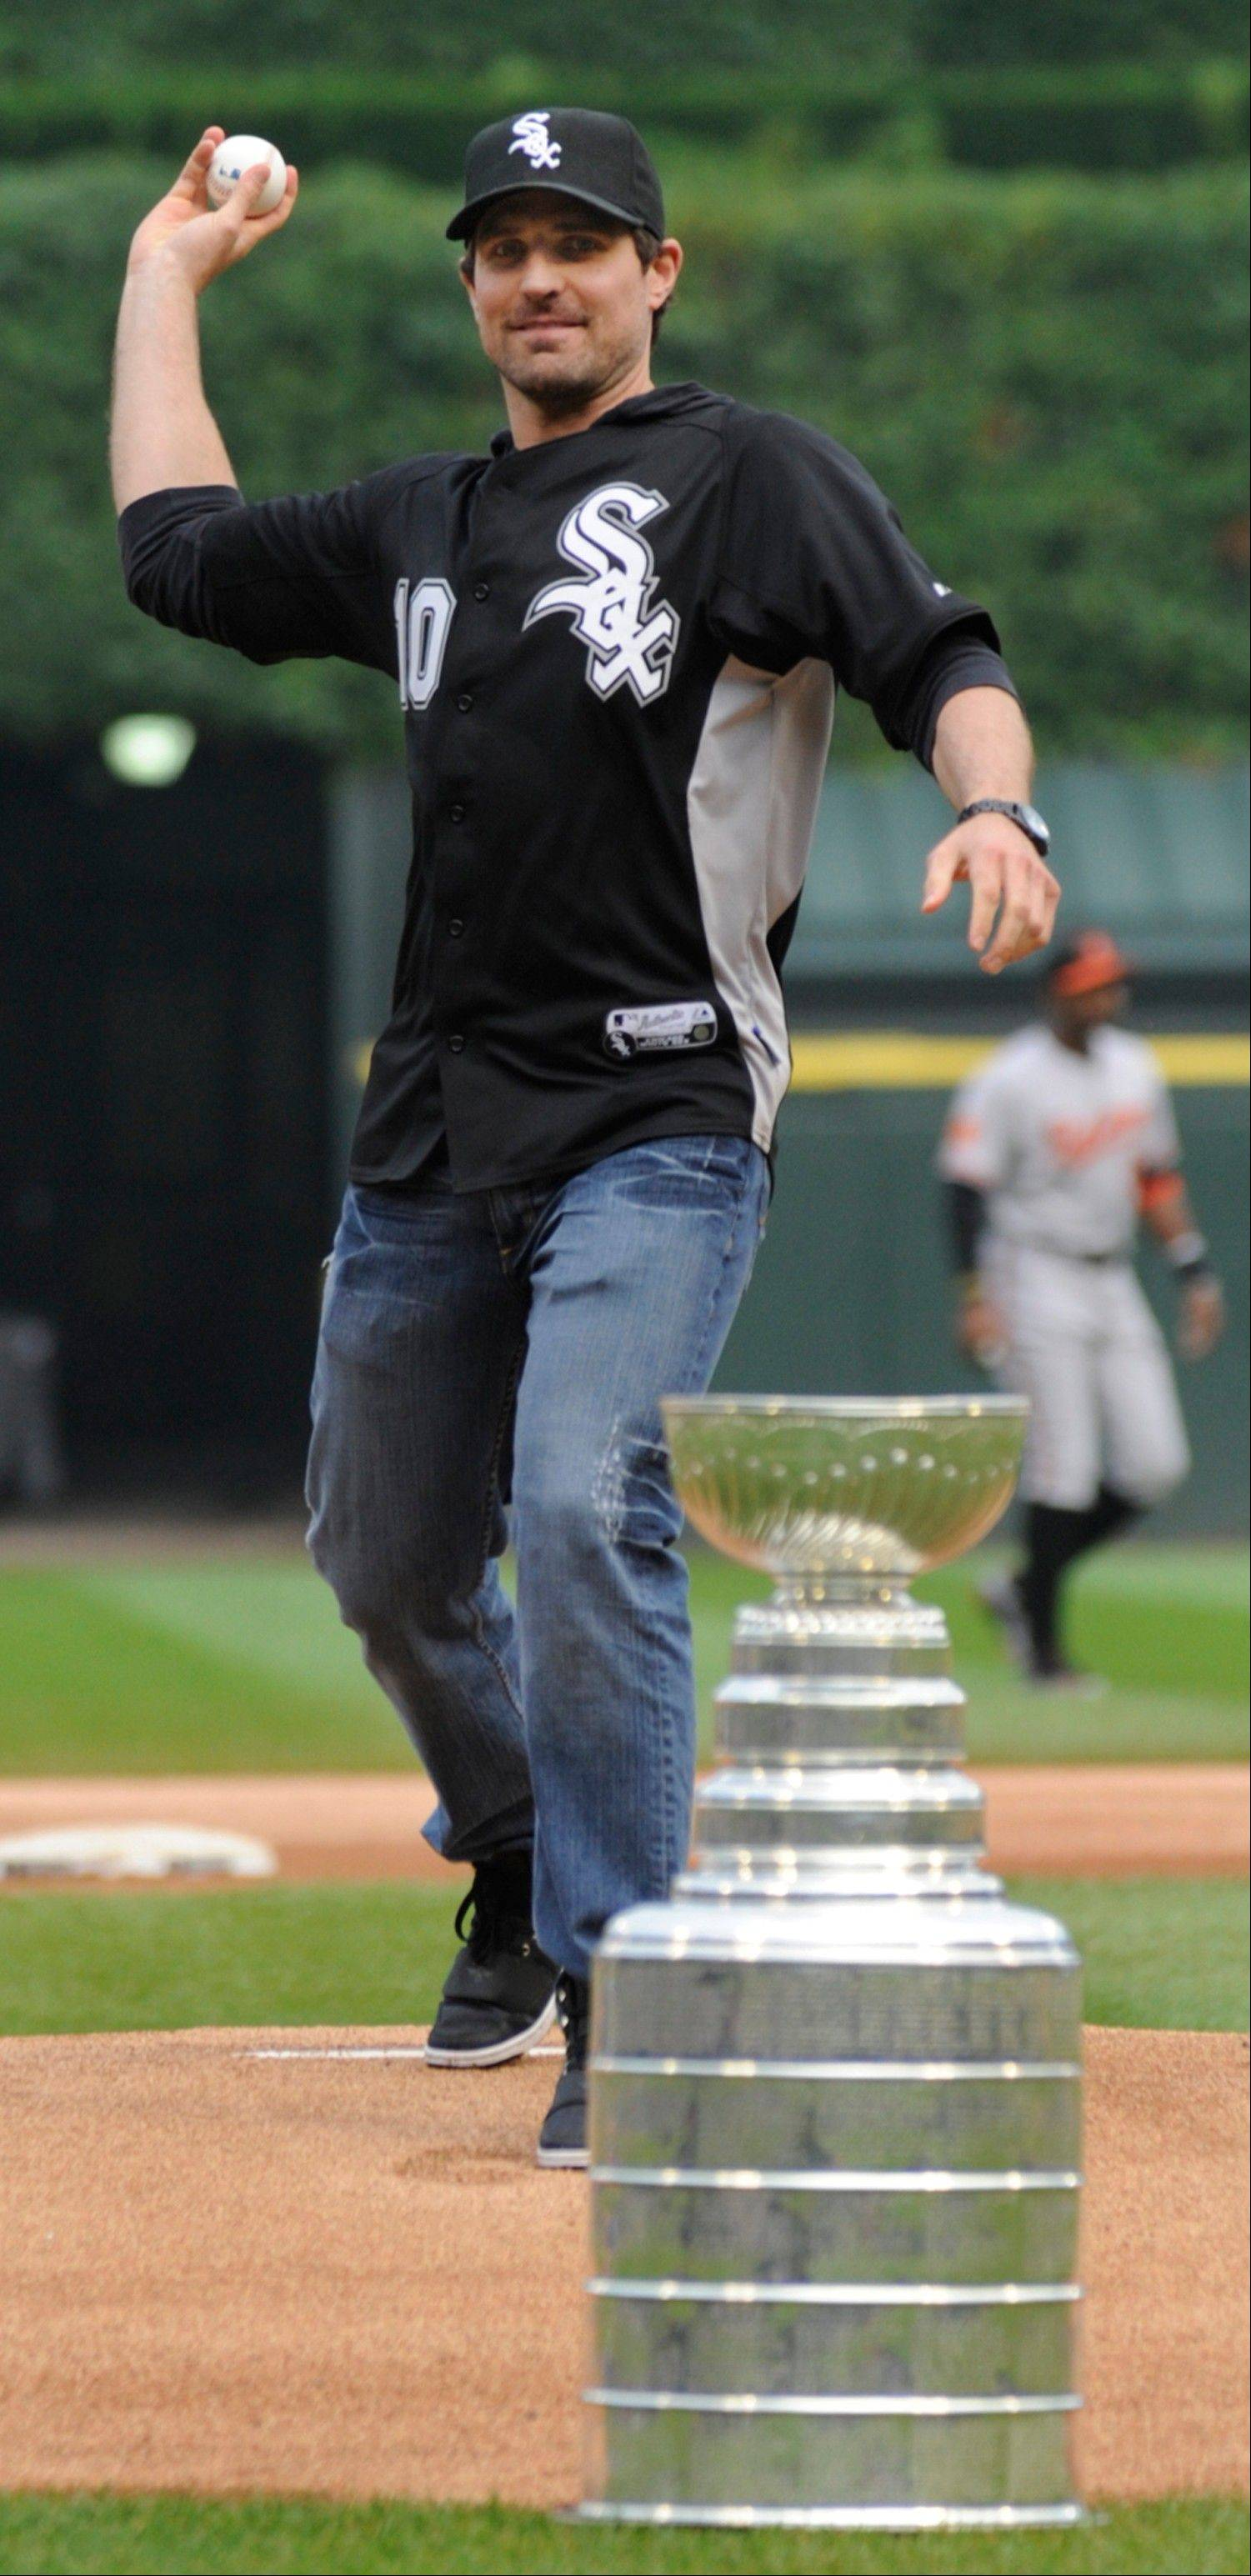 The Blackhawks' Patrick Sharp throws out a ceremonial first pitch before Wednesday's Sox game.